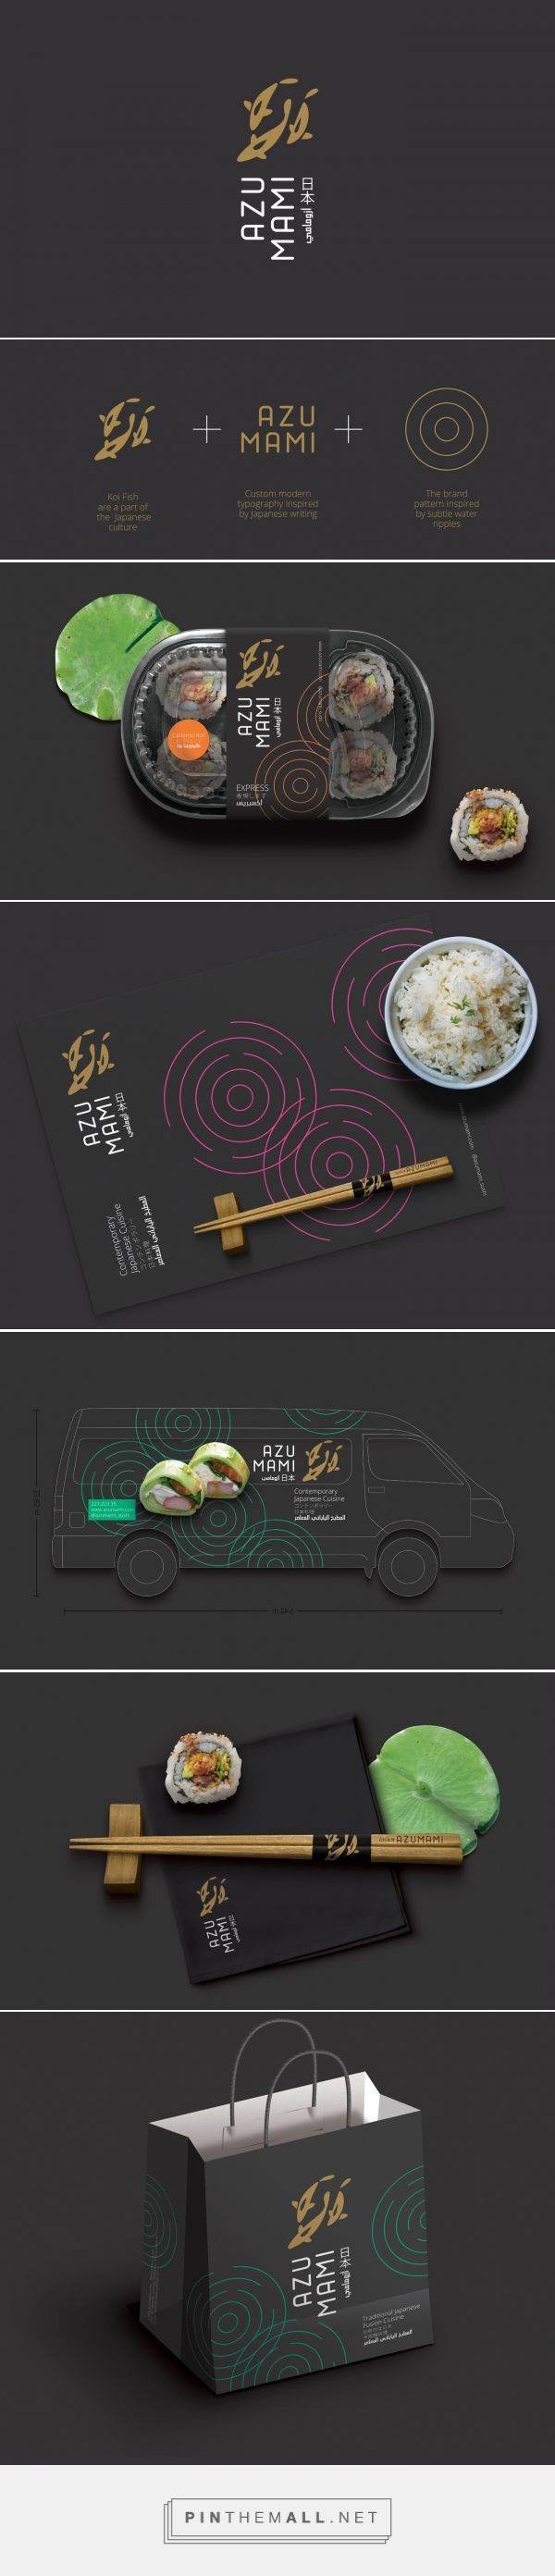 Branding, graphic design and packaging for Azumami on Behance by Studio AIO Shuwaikh, Kuwait curated by Packaging Diva PD. Who's ready for some sushi?